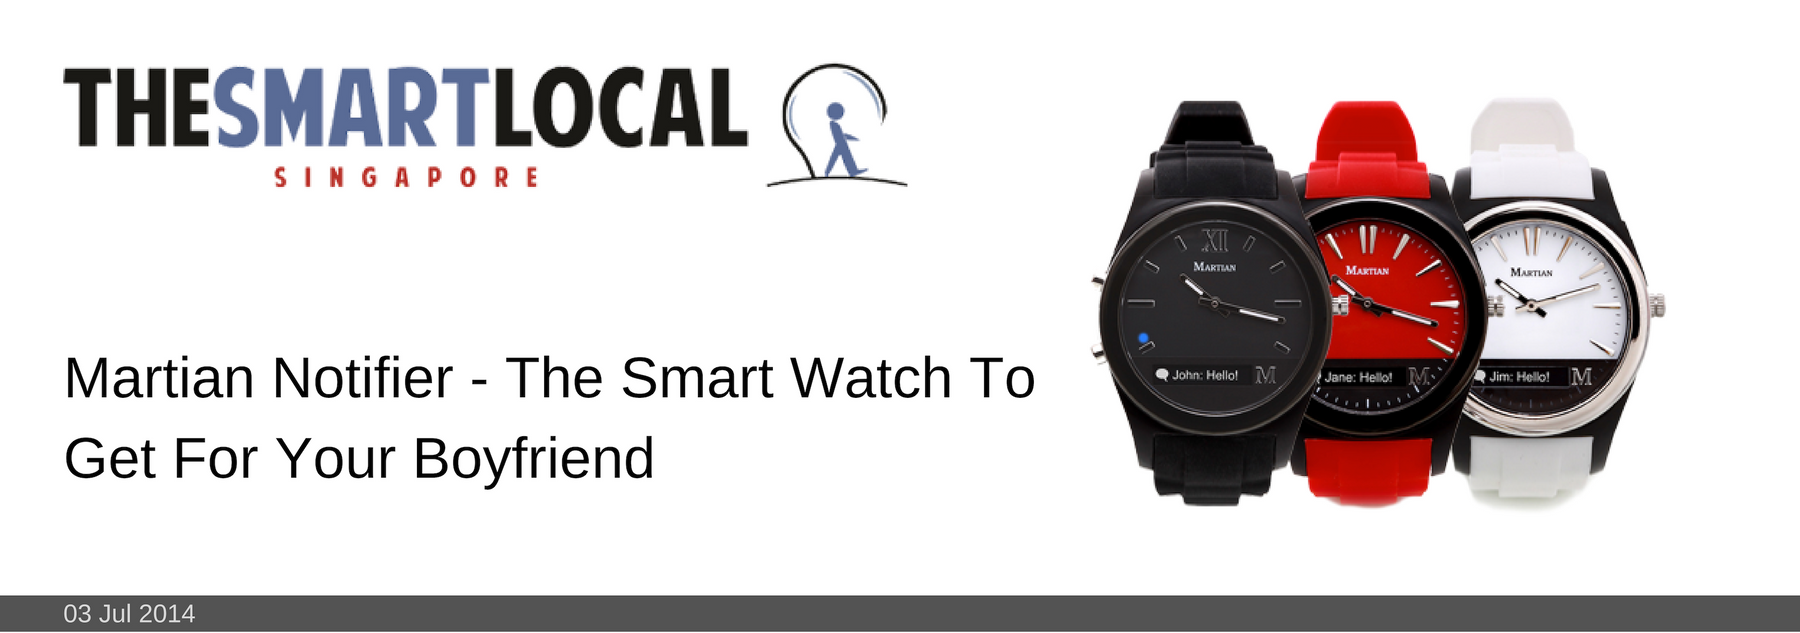 03 JUL 2014: Martian Notifier - The Smart Watch To Get For Your Boyfriend